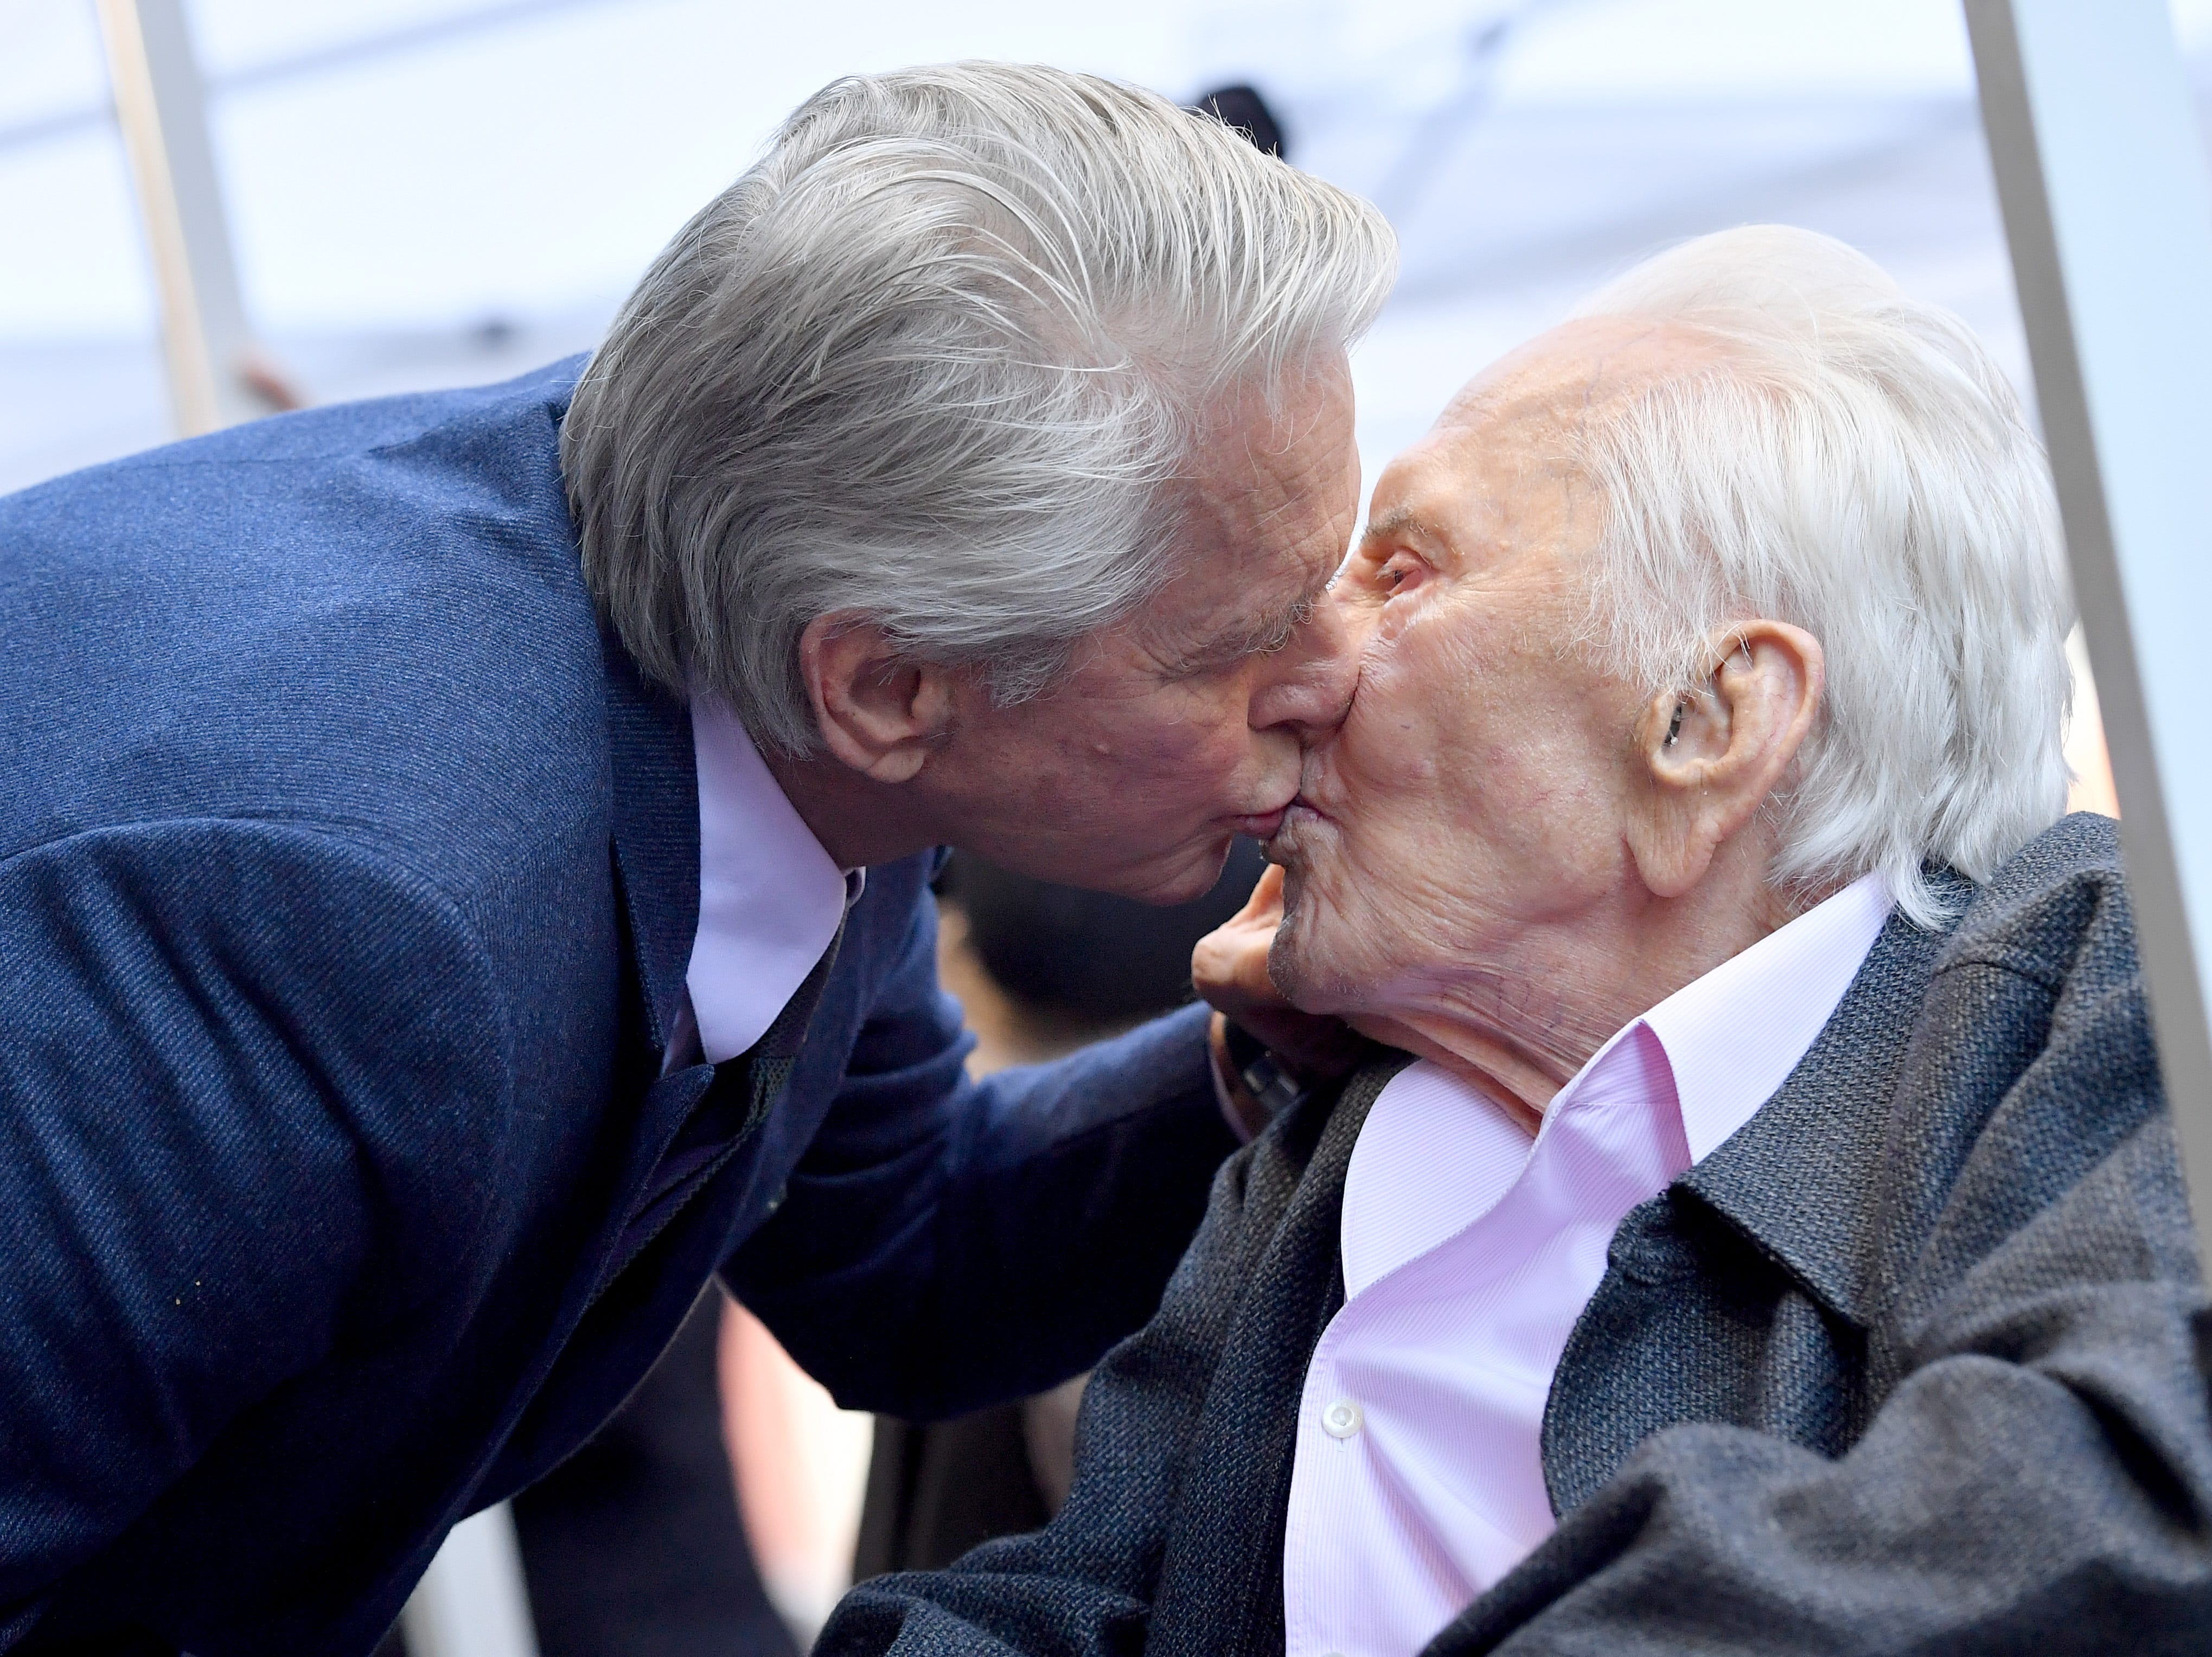 HOLLYWOOD, CALIFORNIA - NOVEMBER 06: Michael Douglas and Kirk Douglas attend the ceremony honoring Michael Douglas with star on the Hollywood Walk of Fame on November 06, 2018 in Hollywood, California. (Photo by Axelle/Bauer-Griffin/FilmMagic) ORG XMIT: 775248764 ORIG FILE ID: 1058348872